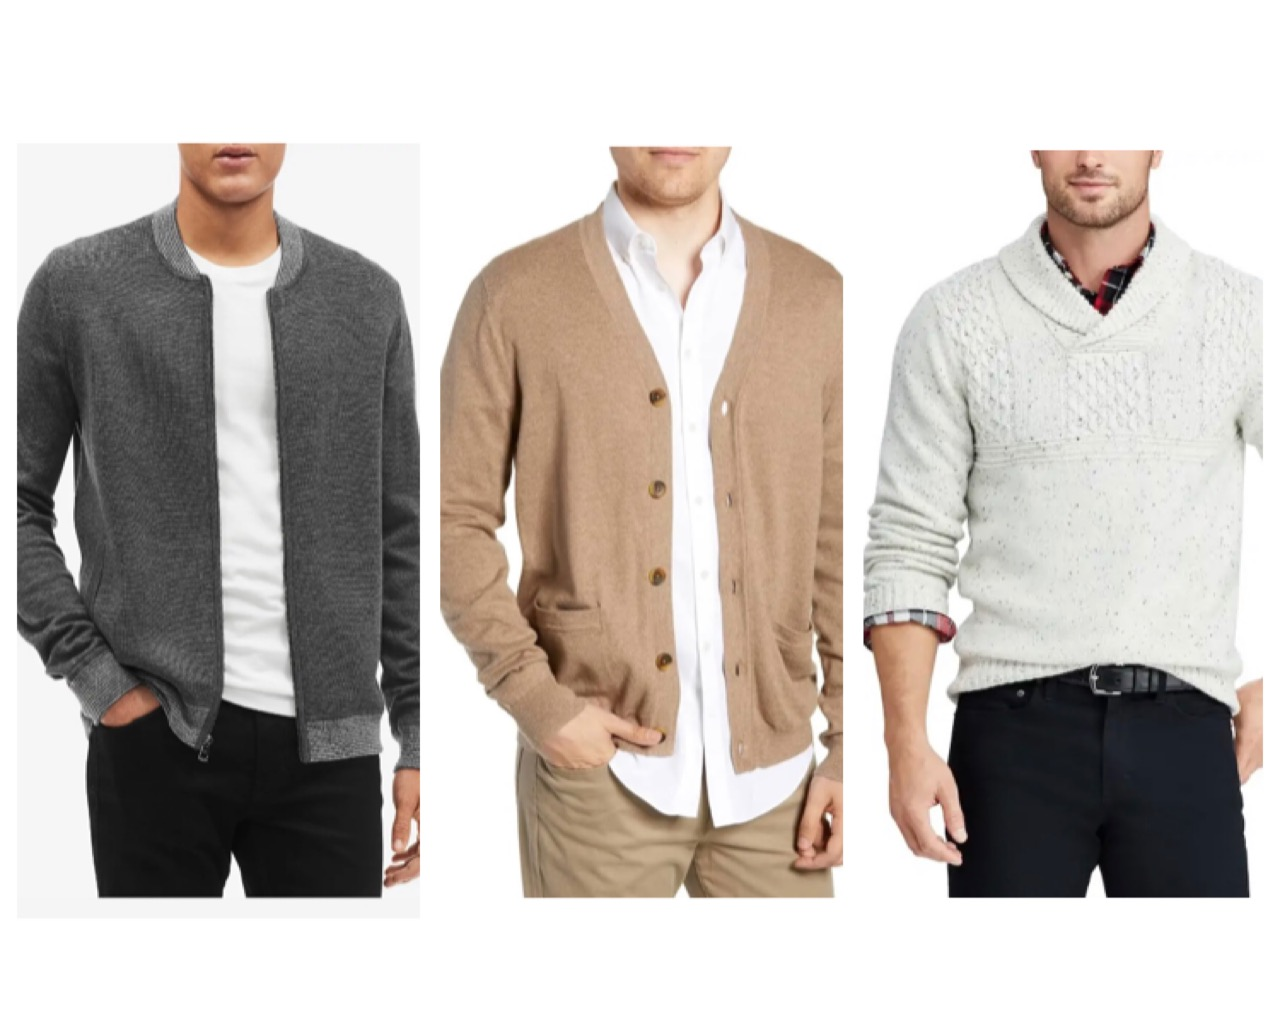 Dre's classic sweater & cardigan combined with dark blue or black jeans or khakis.  All available on our app.